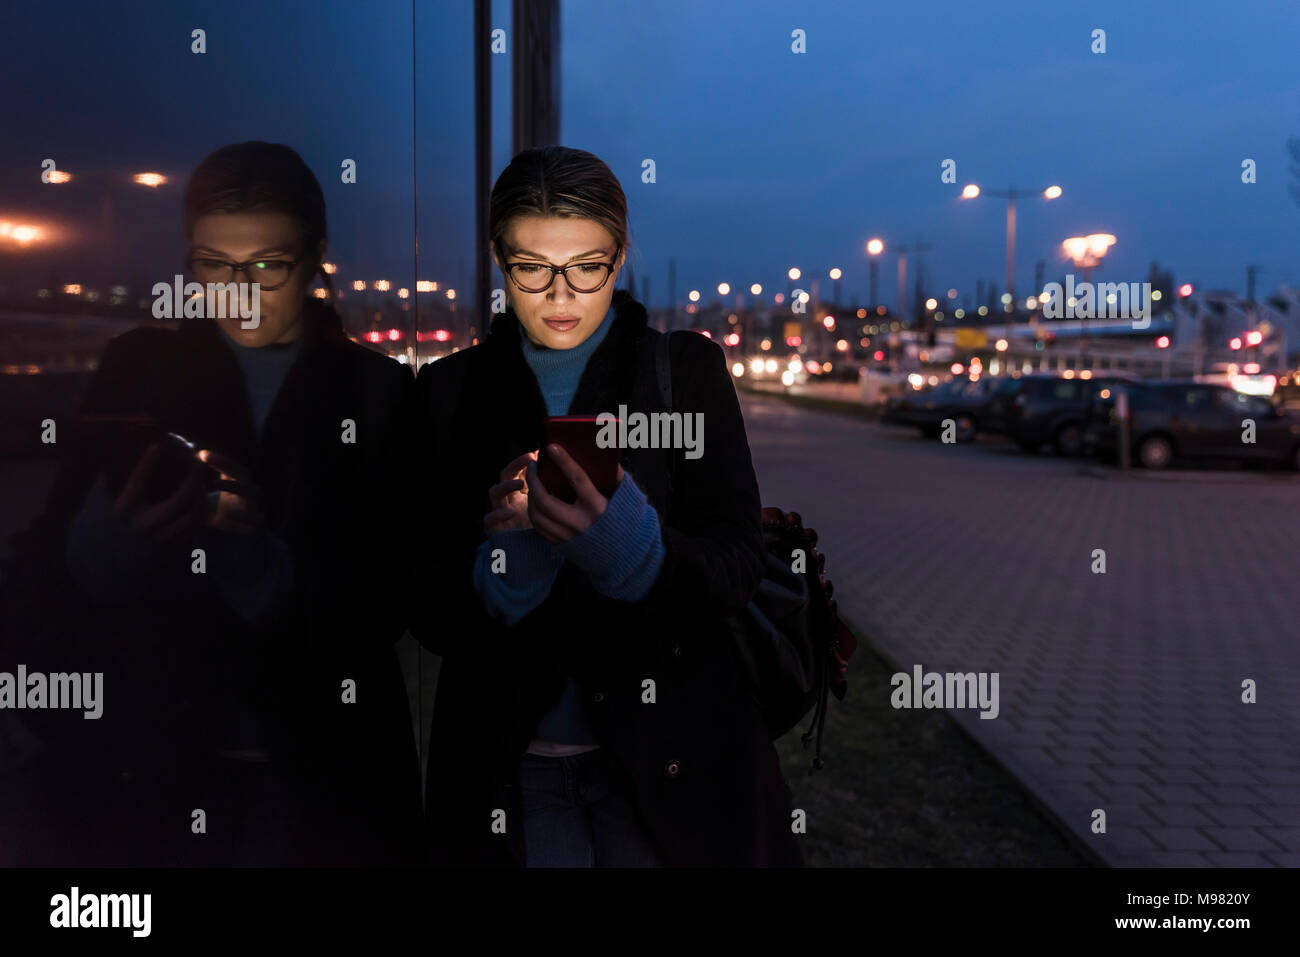 Young woman leaning against glass front at night using cell phone - Stock Image